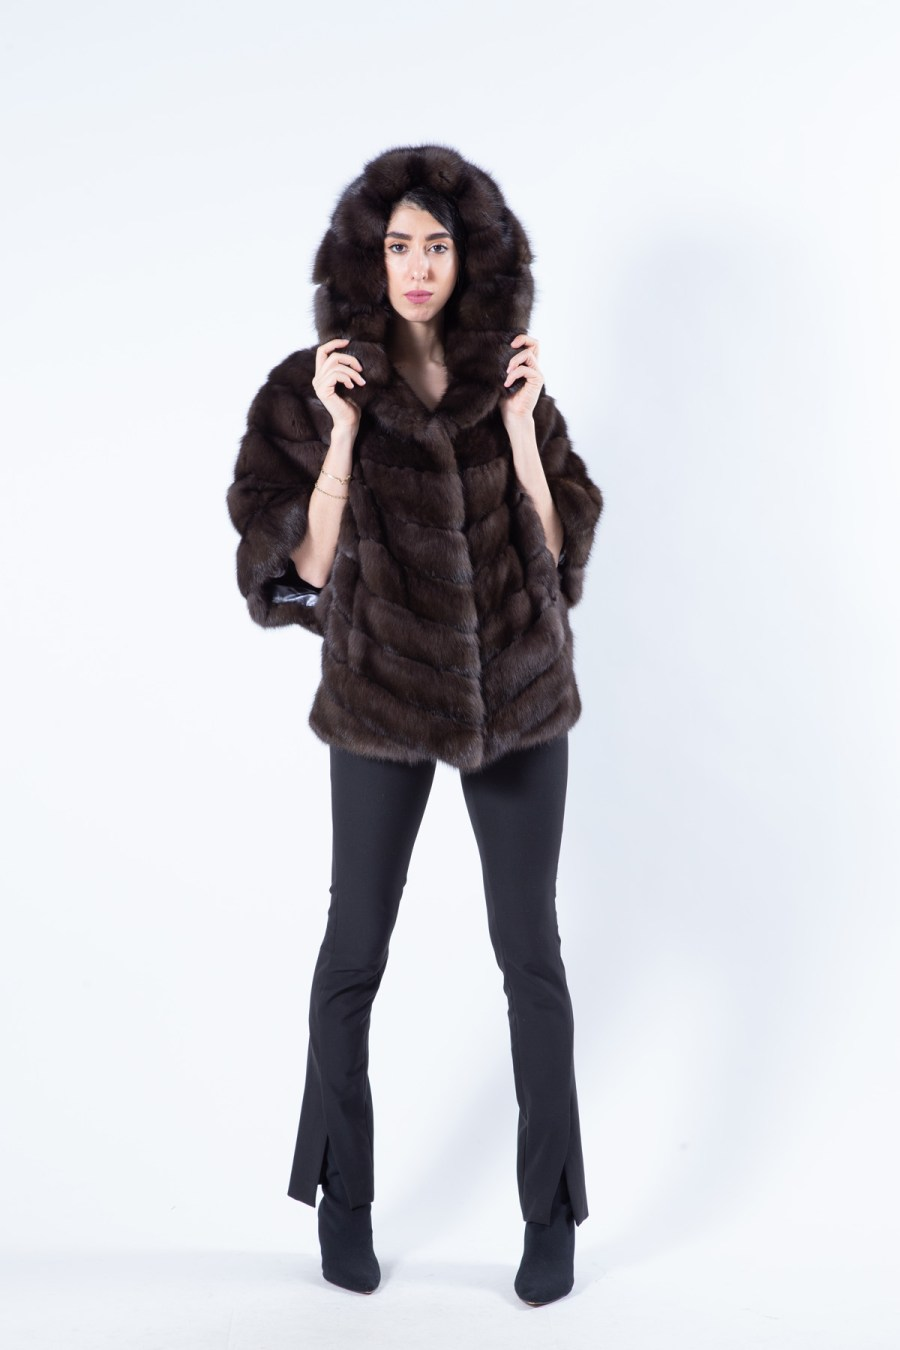 Dark Sable Fur Coat with Hood | Sarigianni Furs